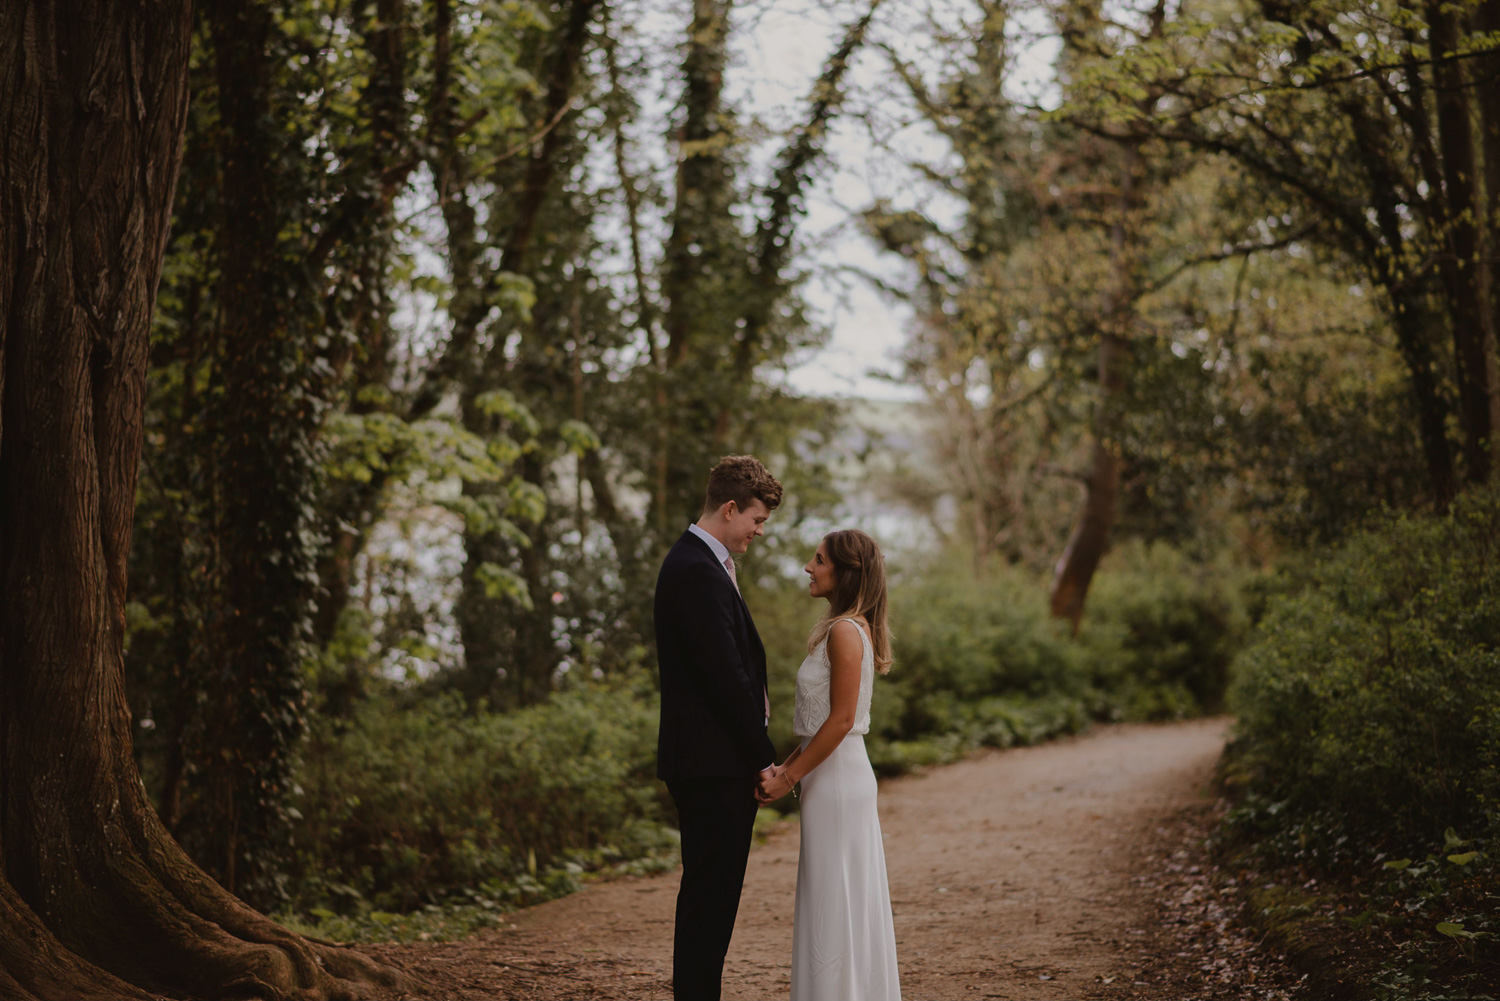 Rathmullan House wedding photographer-83.jpg